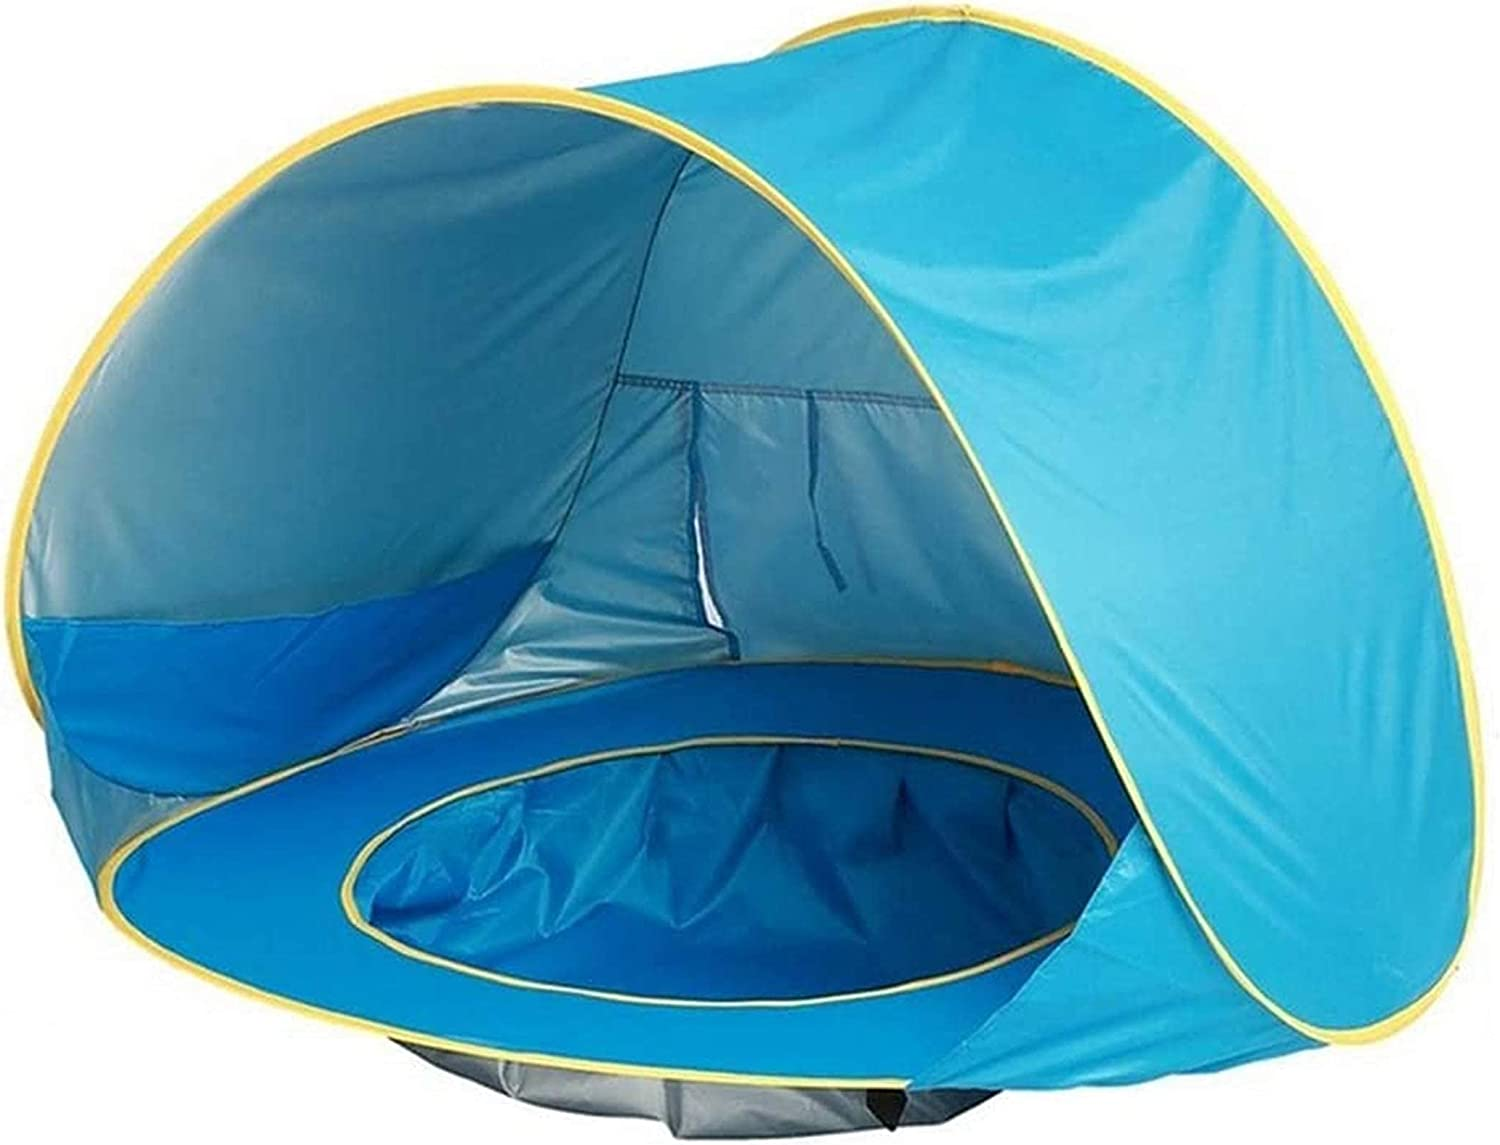 Furren Pop up Tents Selling rankings for Adults Camping Award Tent Out Awning